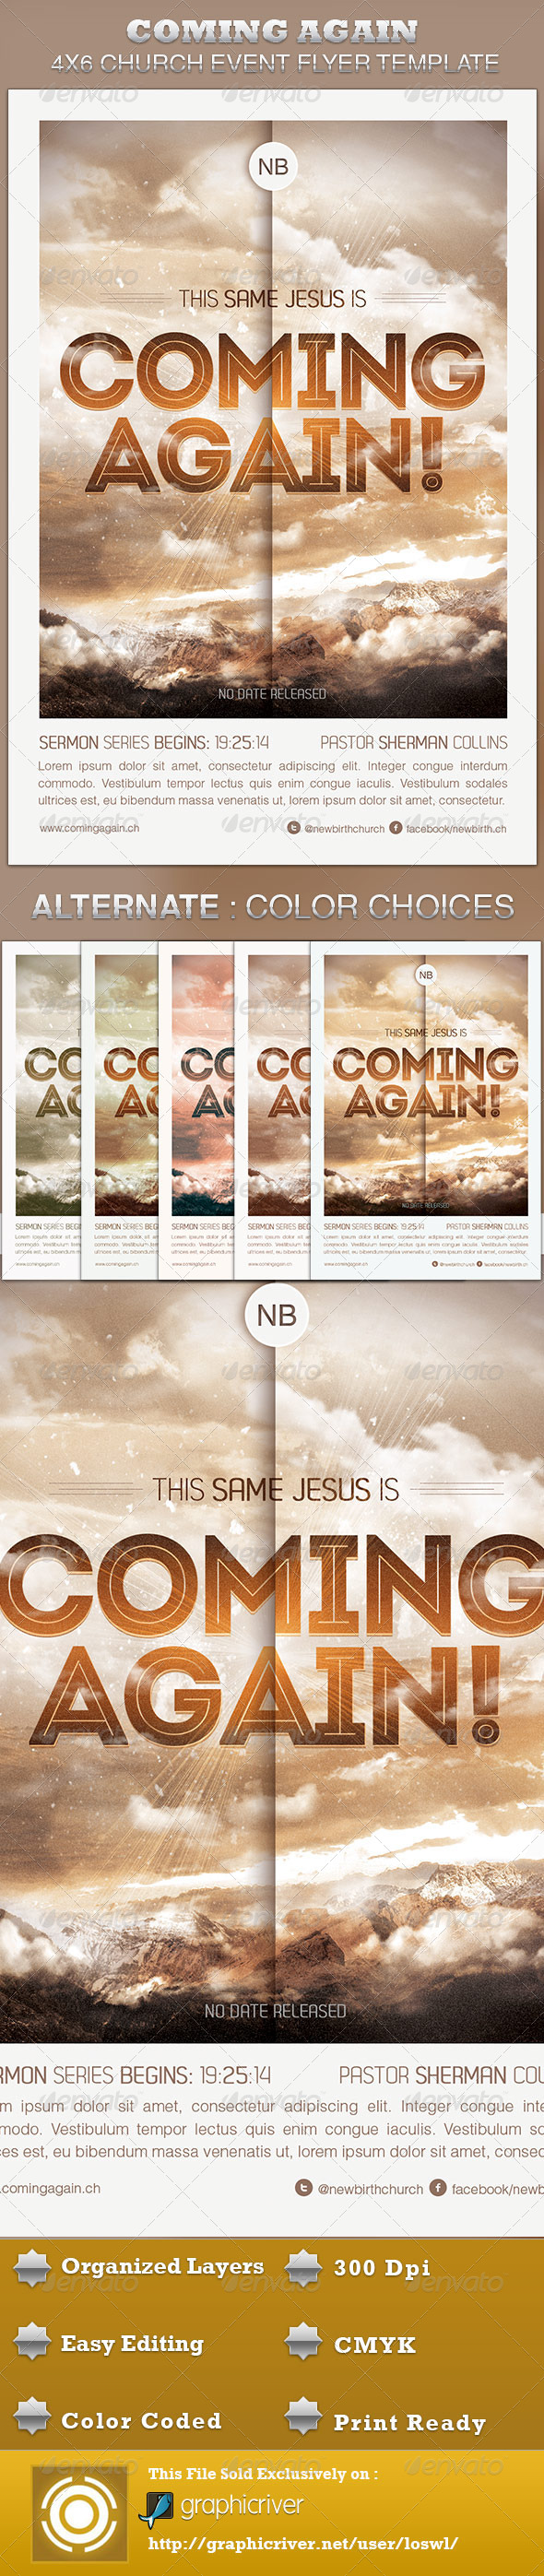 GraphicRiver Coming Again Church Flyer Template 4490743